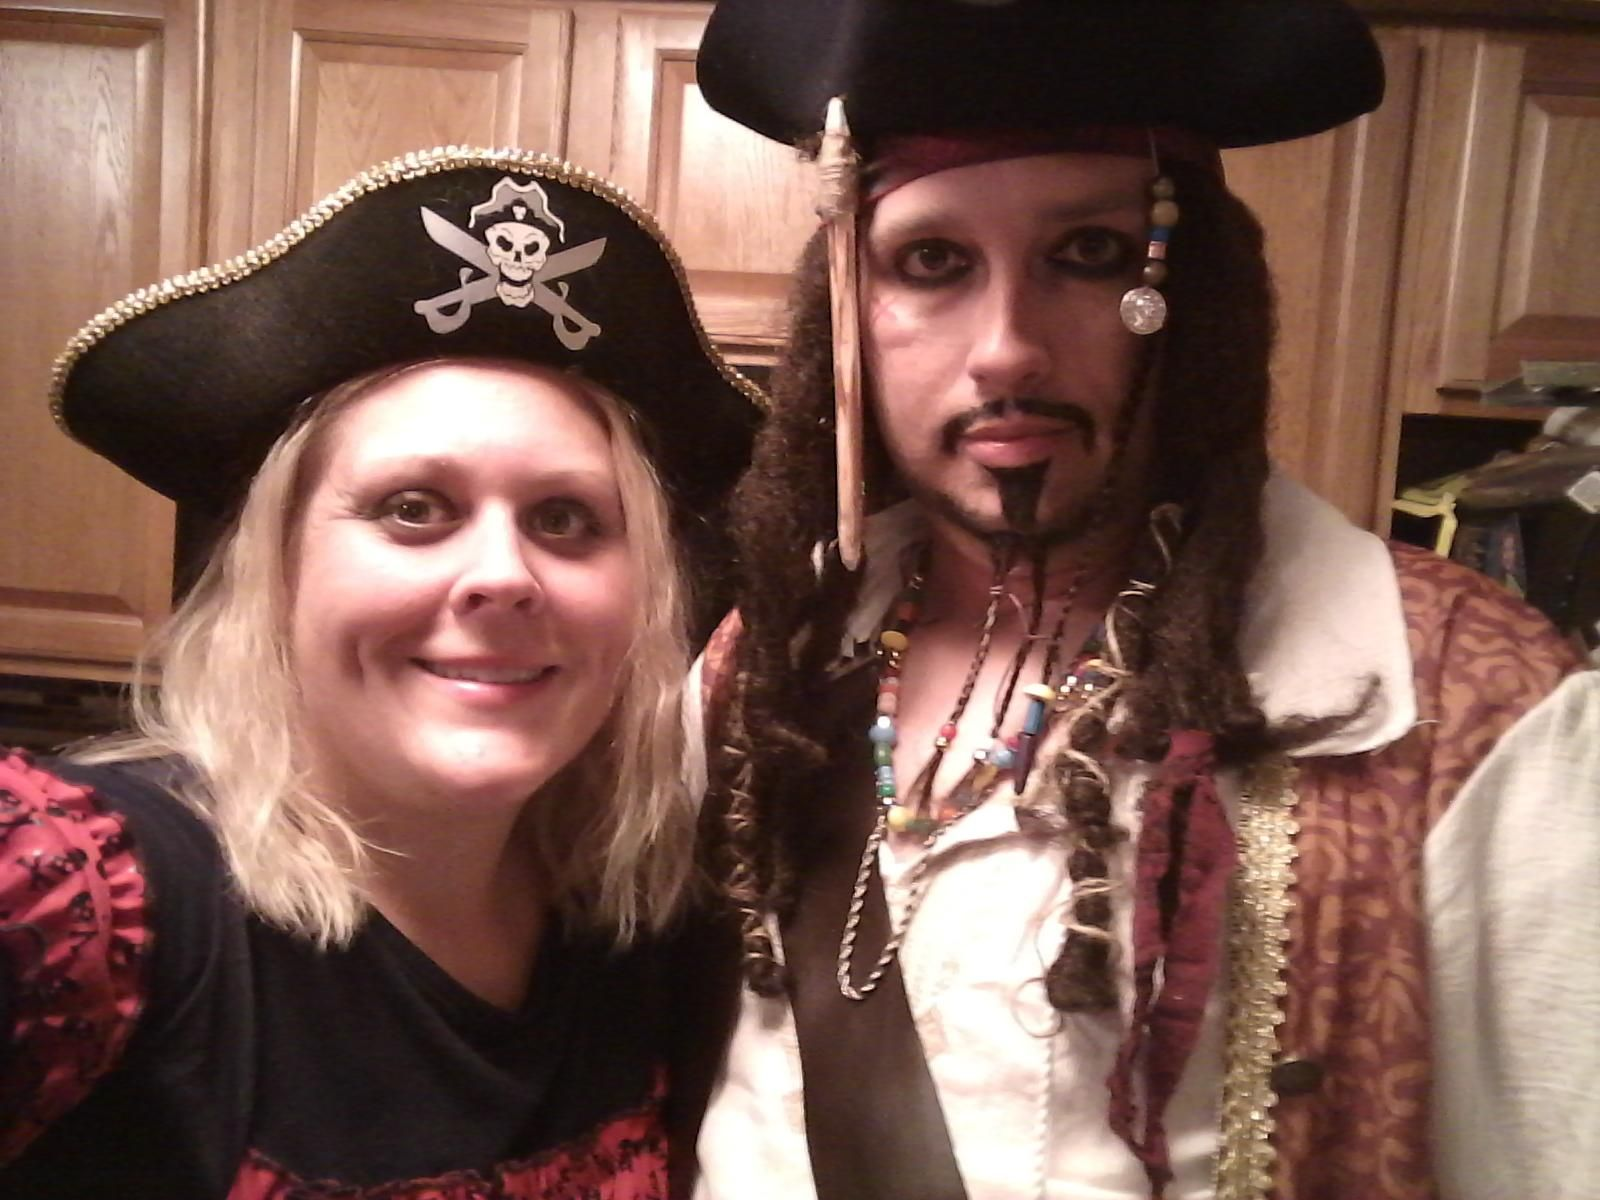 Happy halloween Reddit from a couple of soul mateys! https://i ...